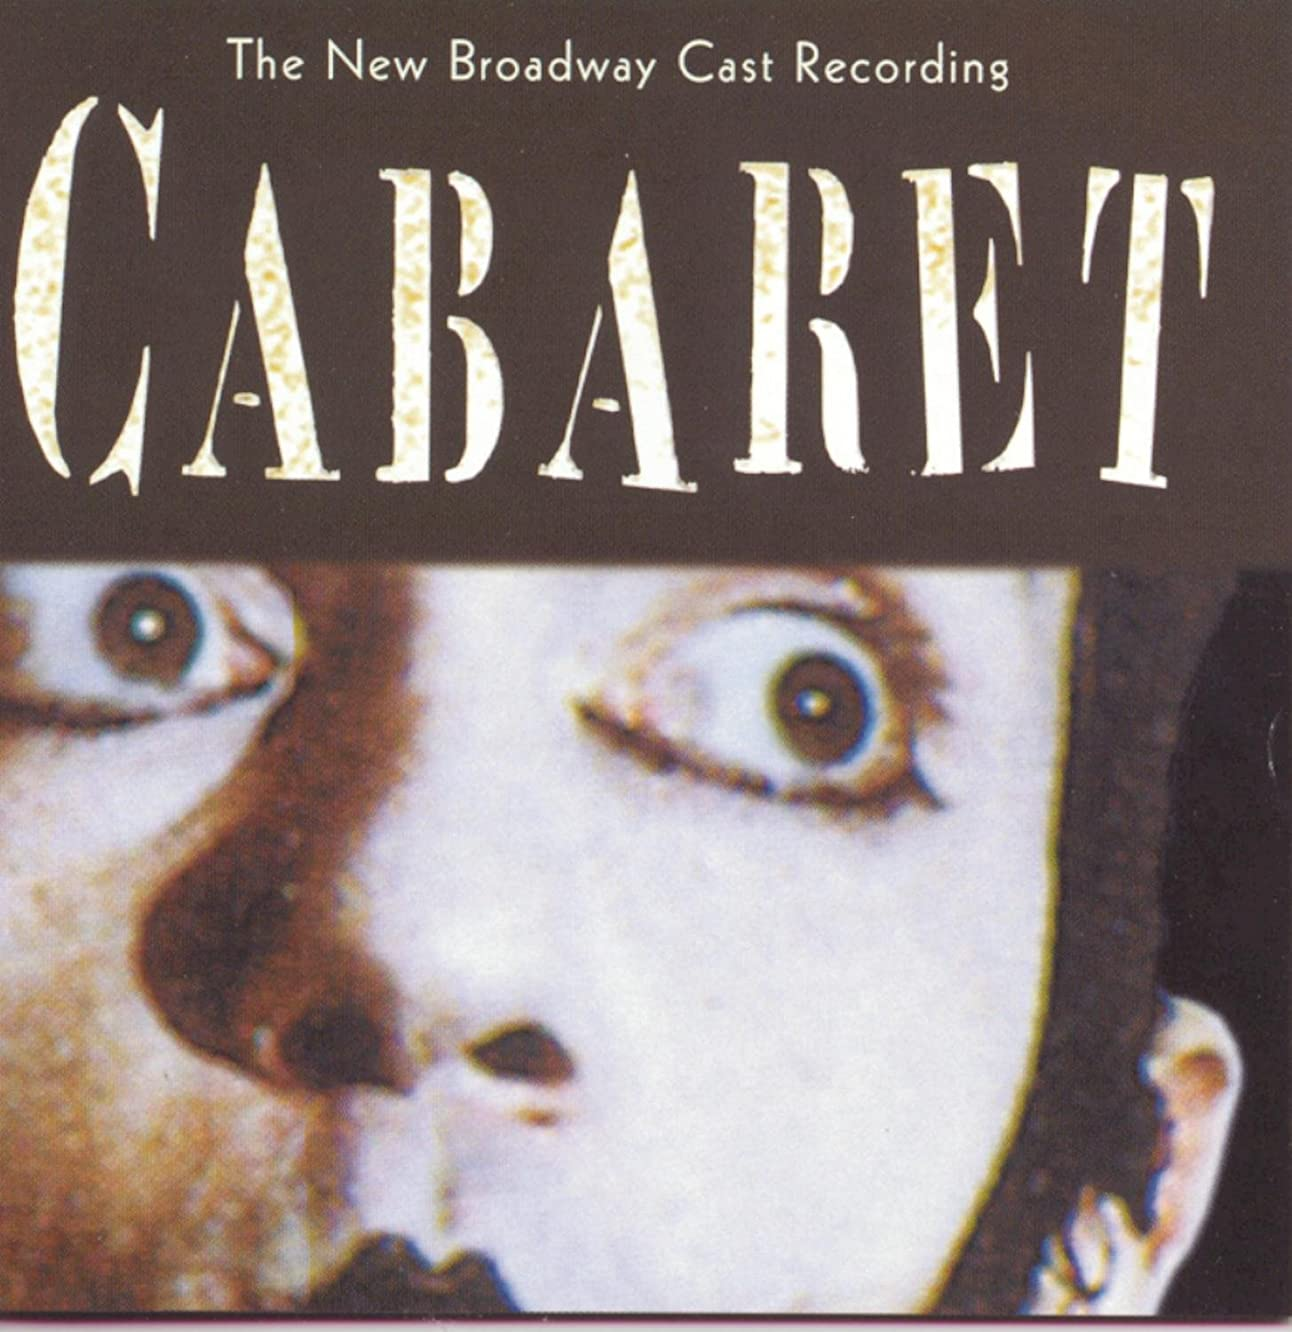 Cabaret: The New Broadway Cast Recording 1998 Broadway Revival